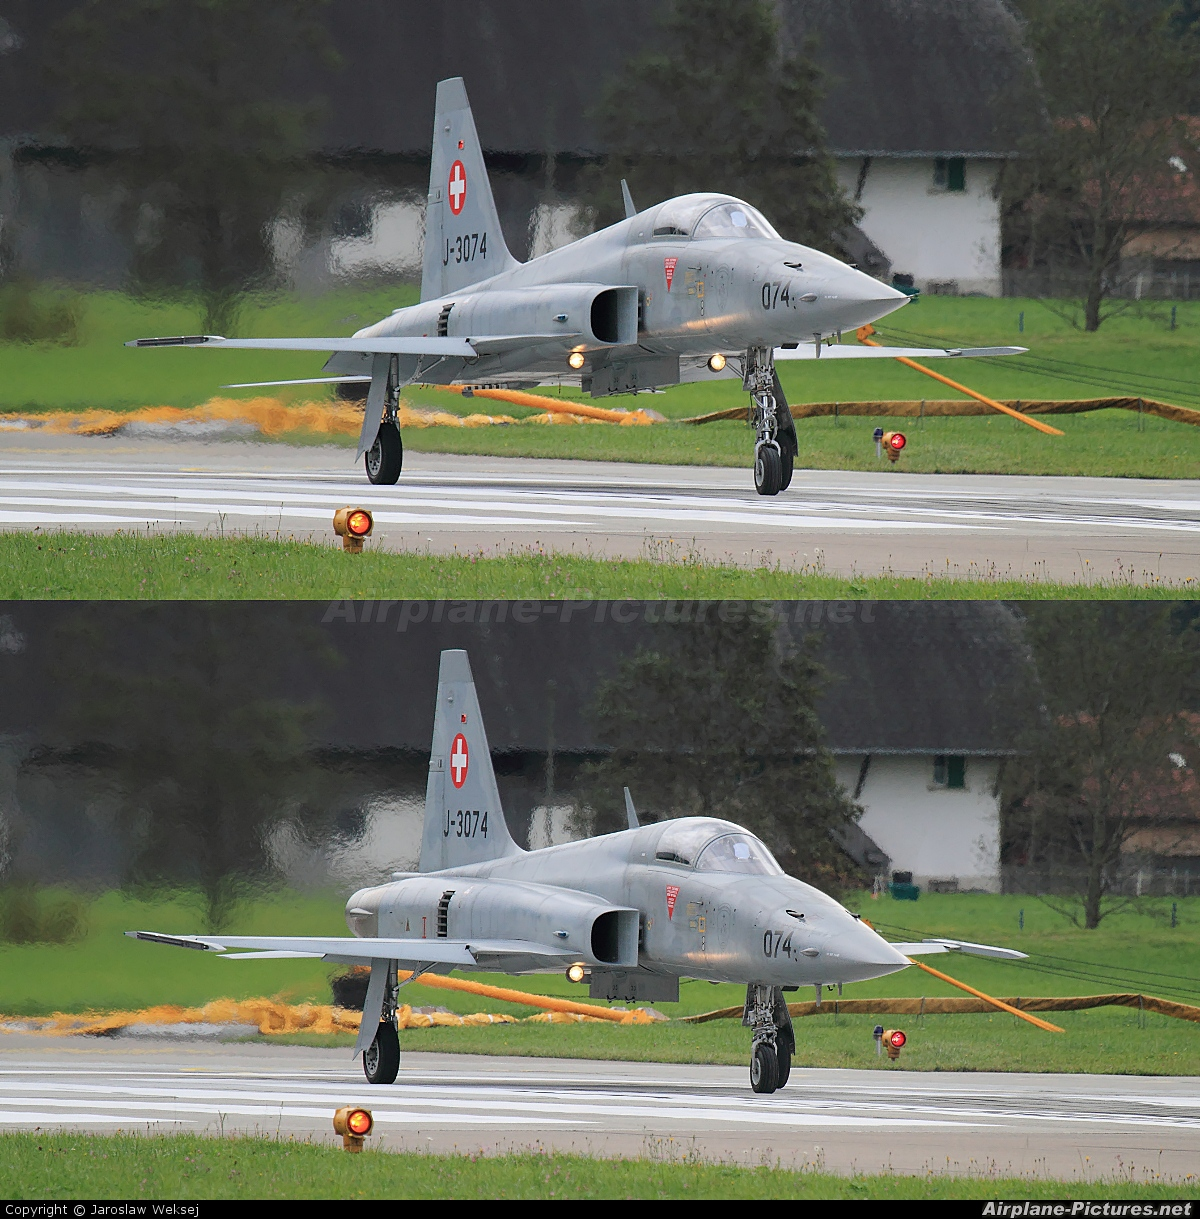 Switzerland - Air Force J-3074 aircraft at Meiringen